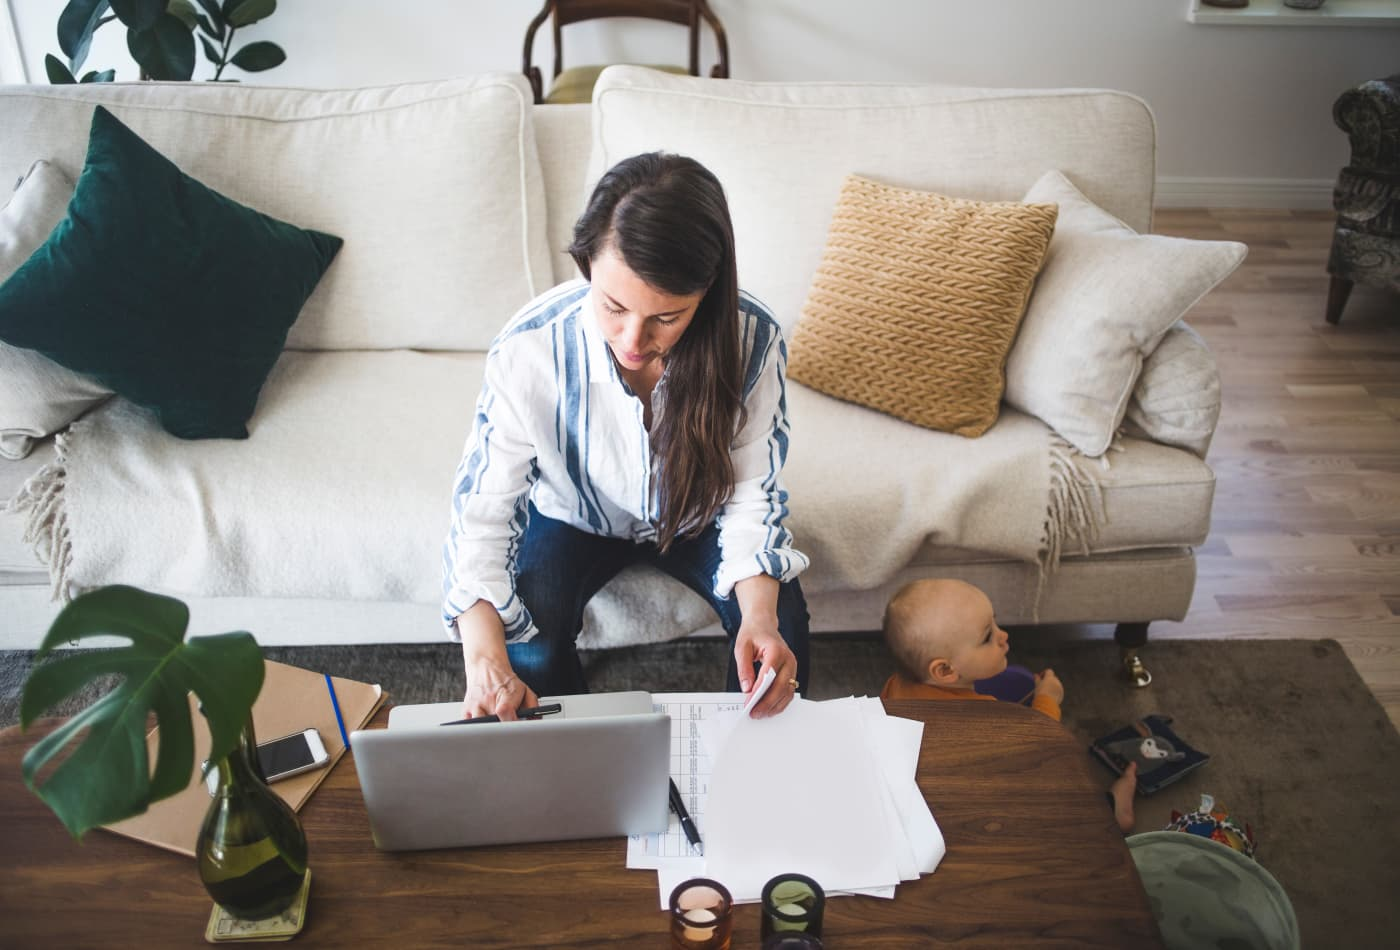 5 easy ways to earn extra money from your couch